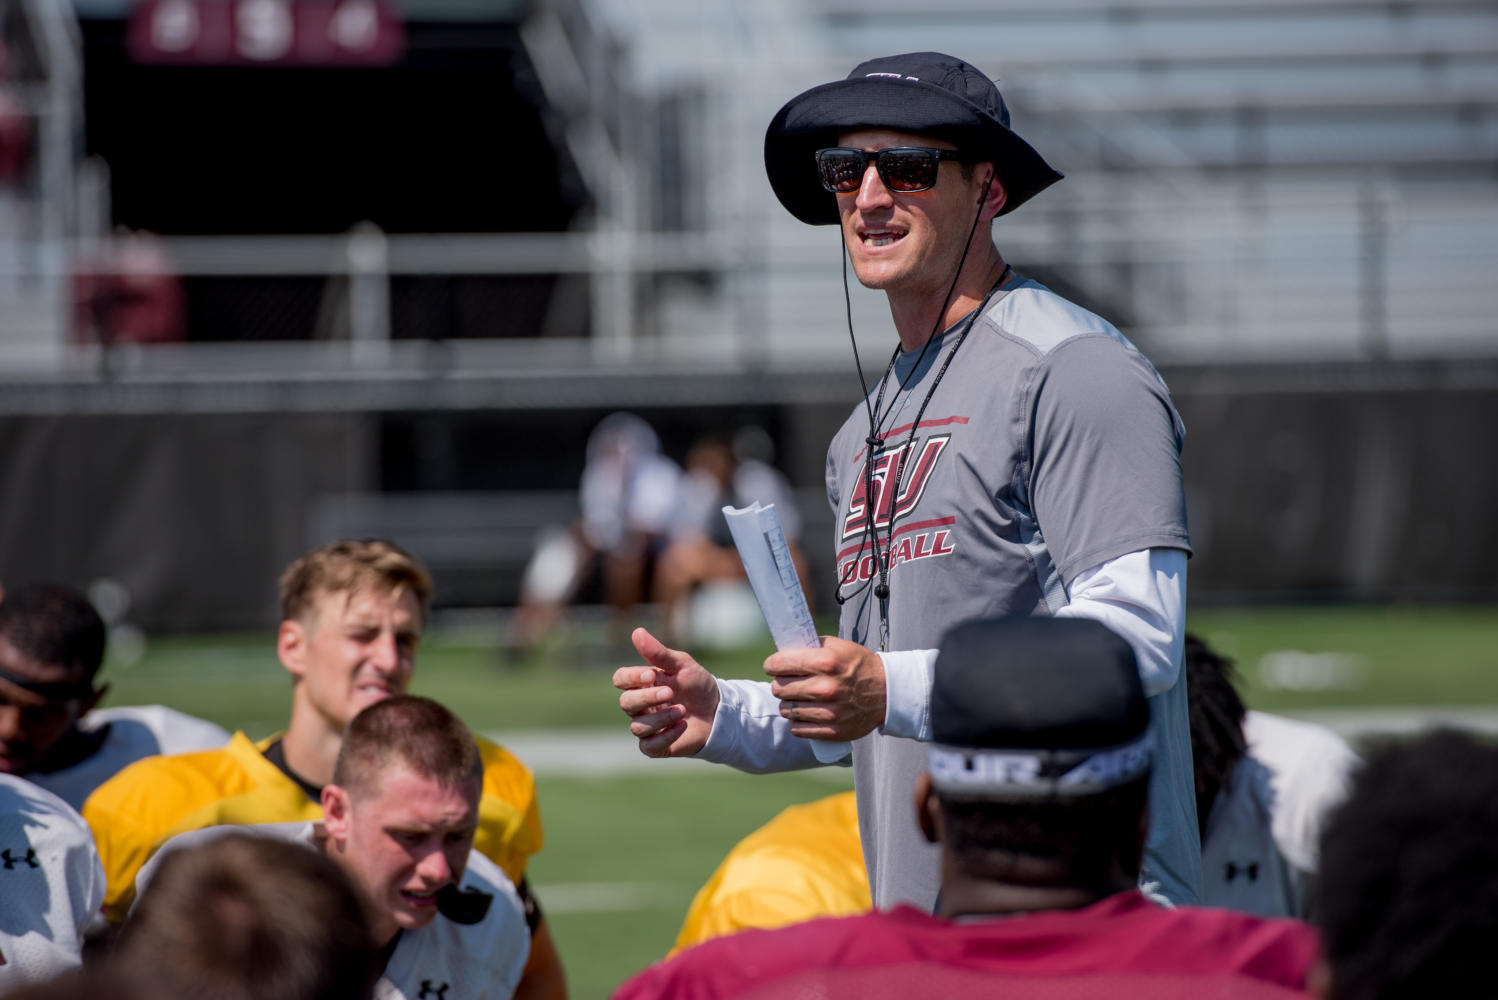 SIU Fooball head coach Nick Hill talks to members of the Saluki football team after their first fall scrimmage, Saturday, Aug. 11, 2017, at Saluki Stadium.